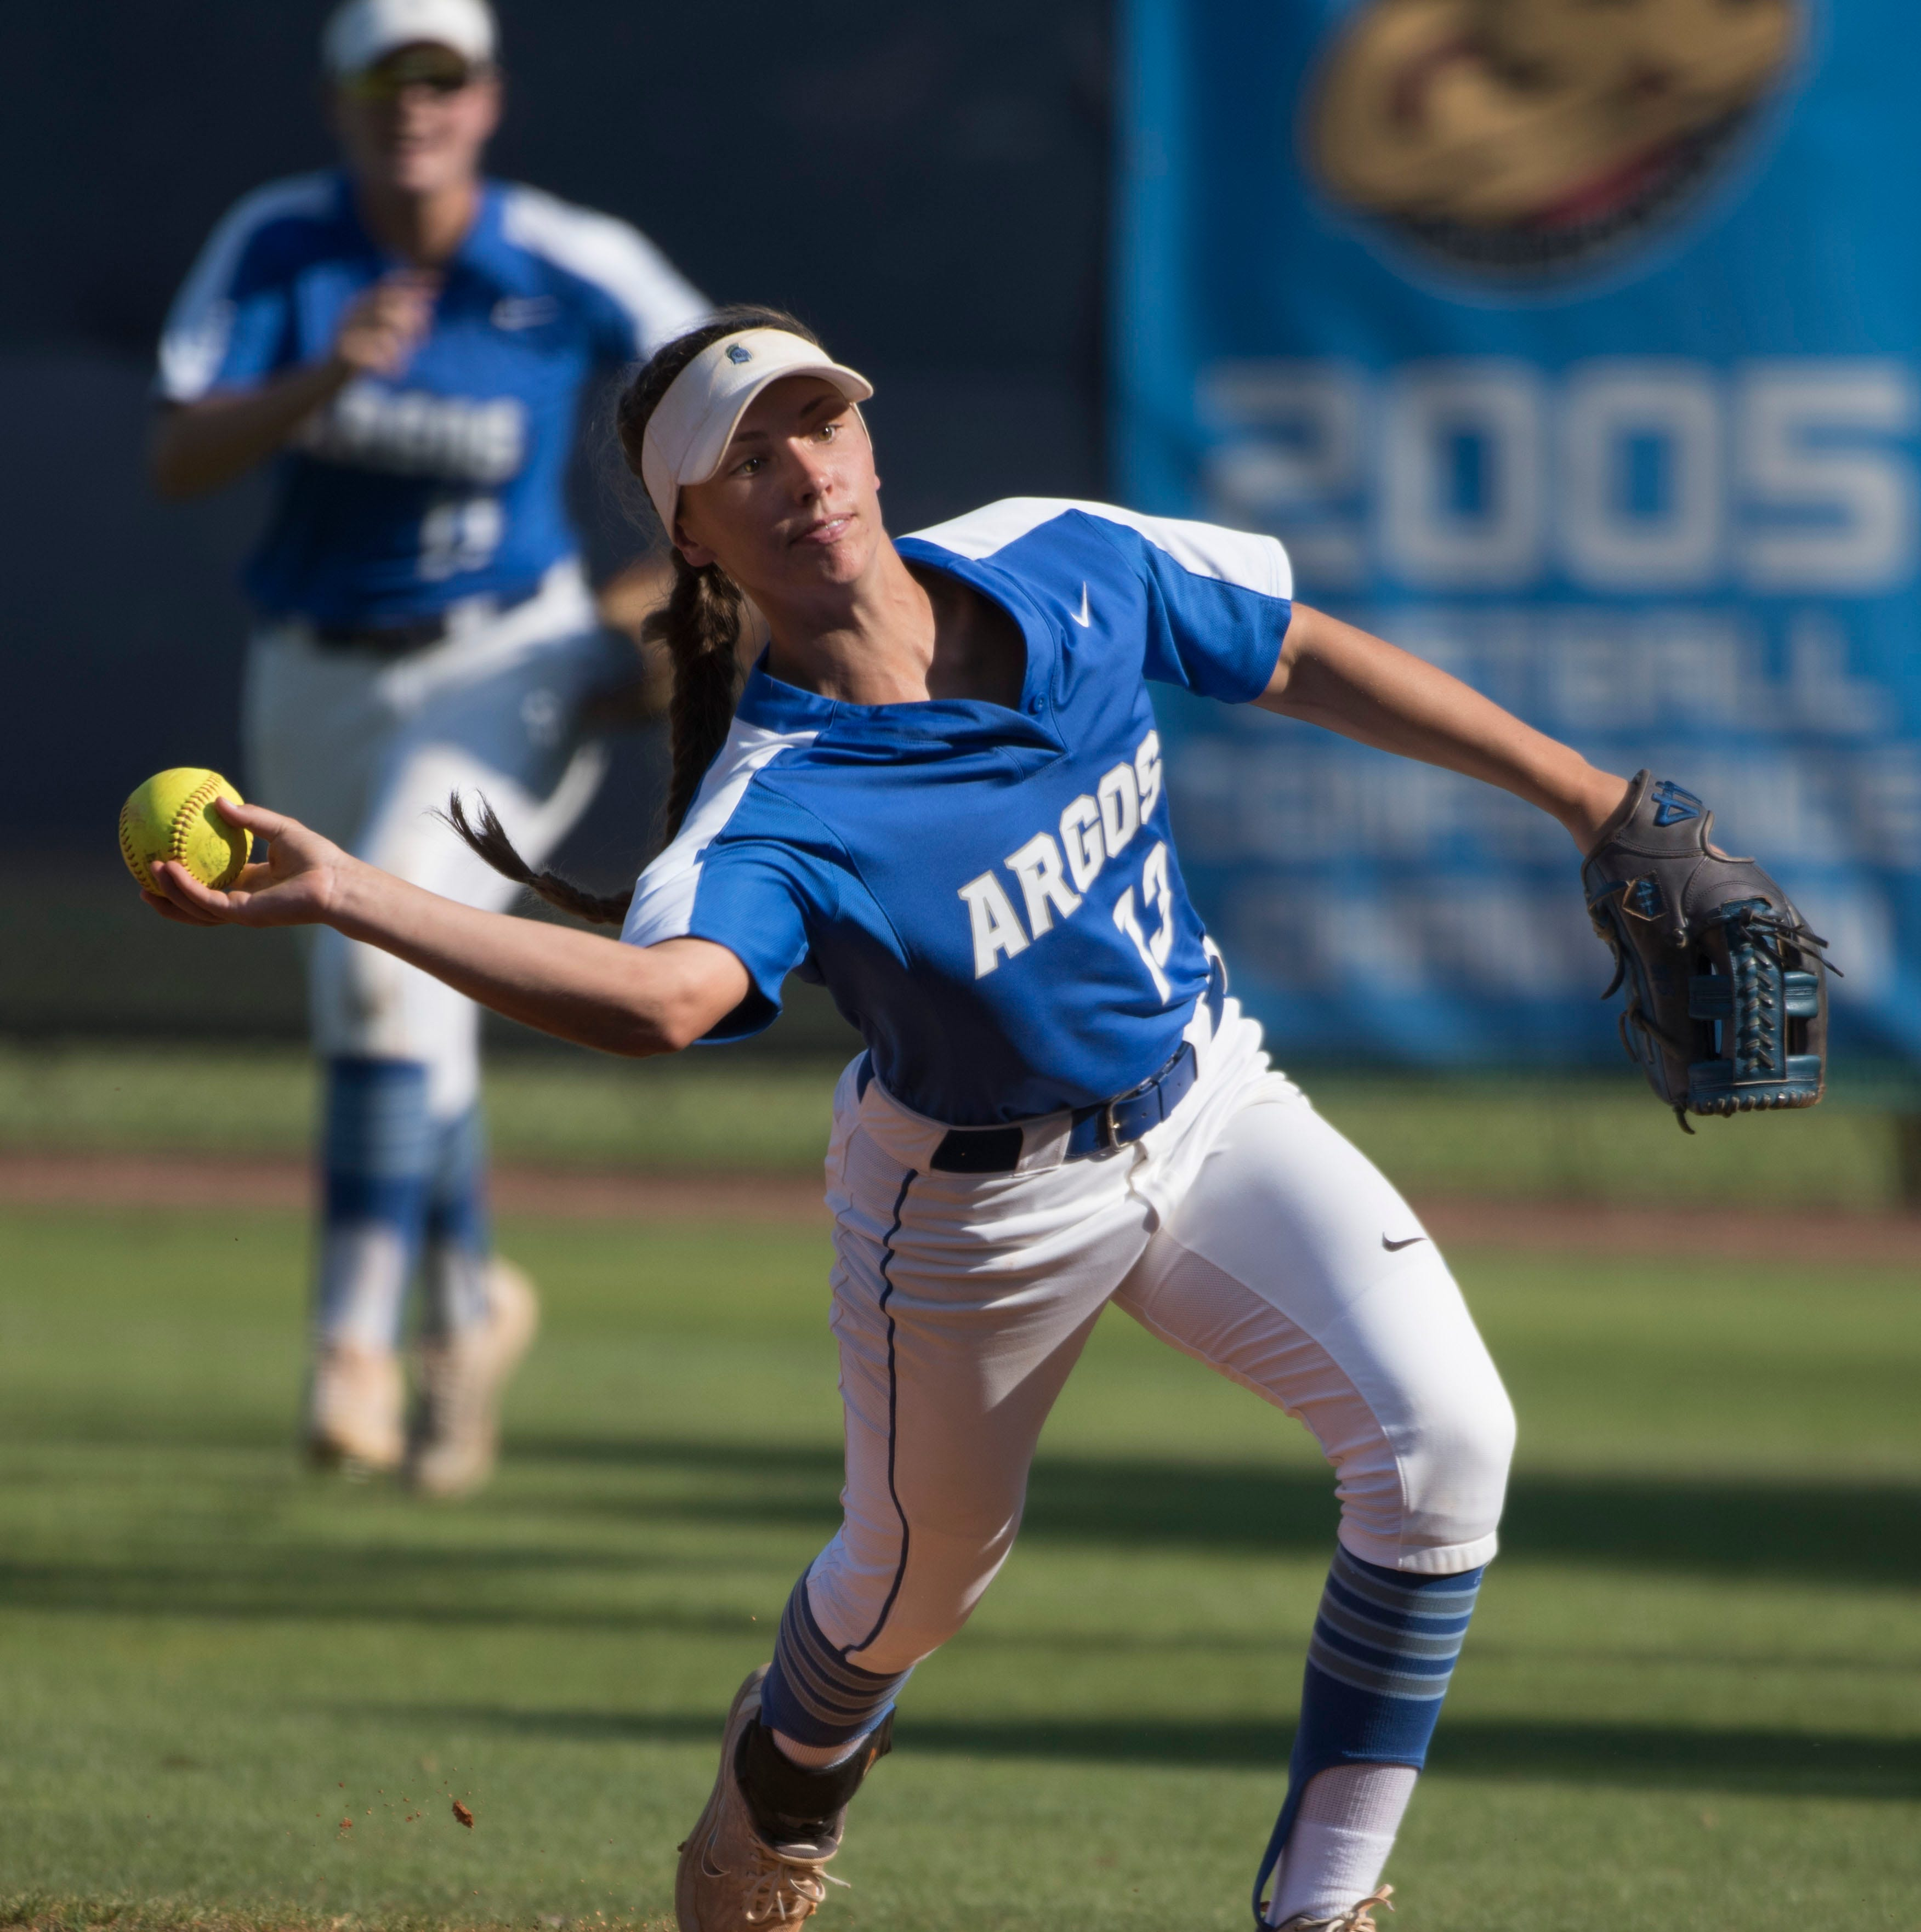 No. 2 UWF eliminated in extra innings after late Grand Valley State comeback